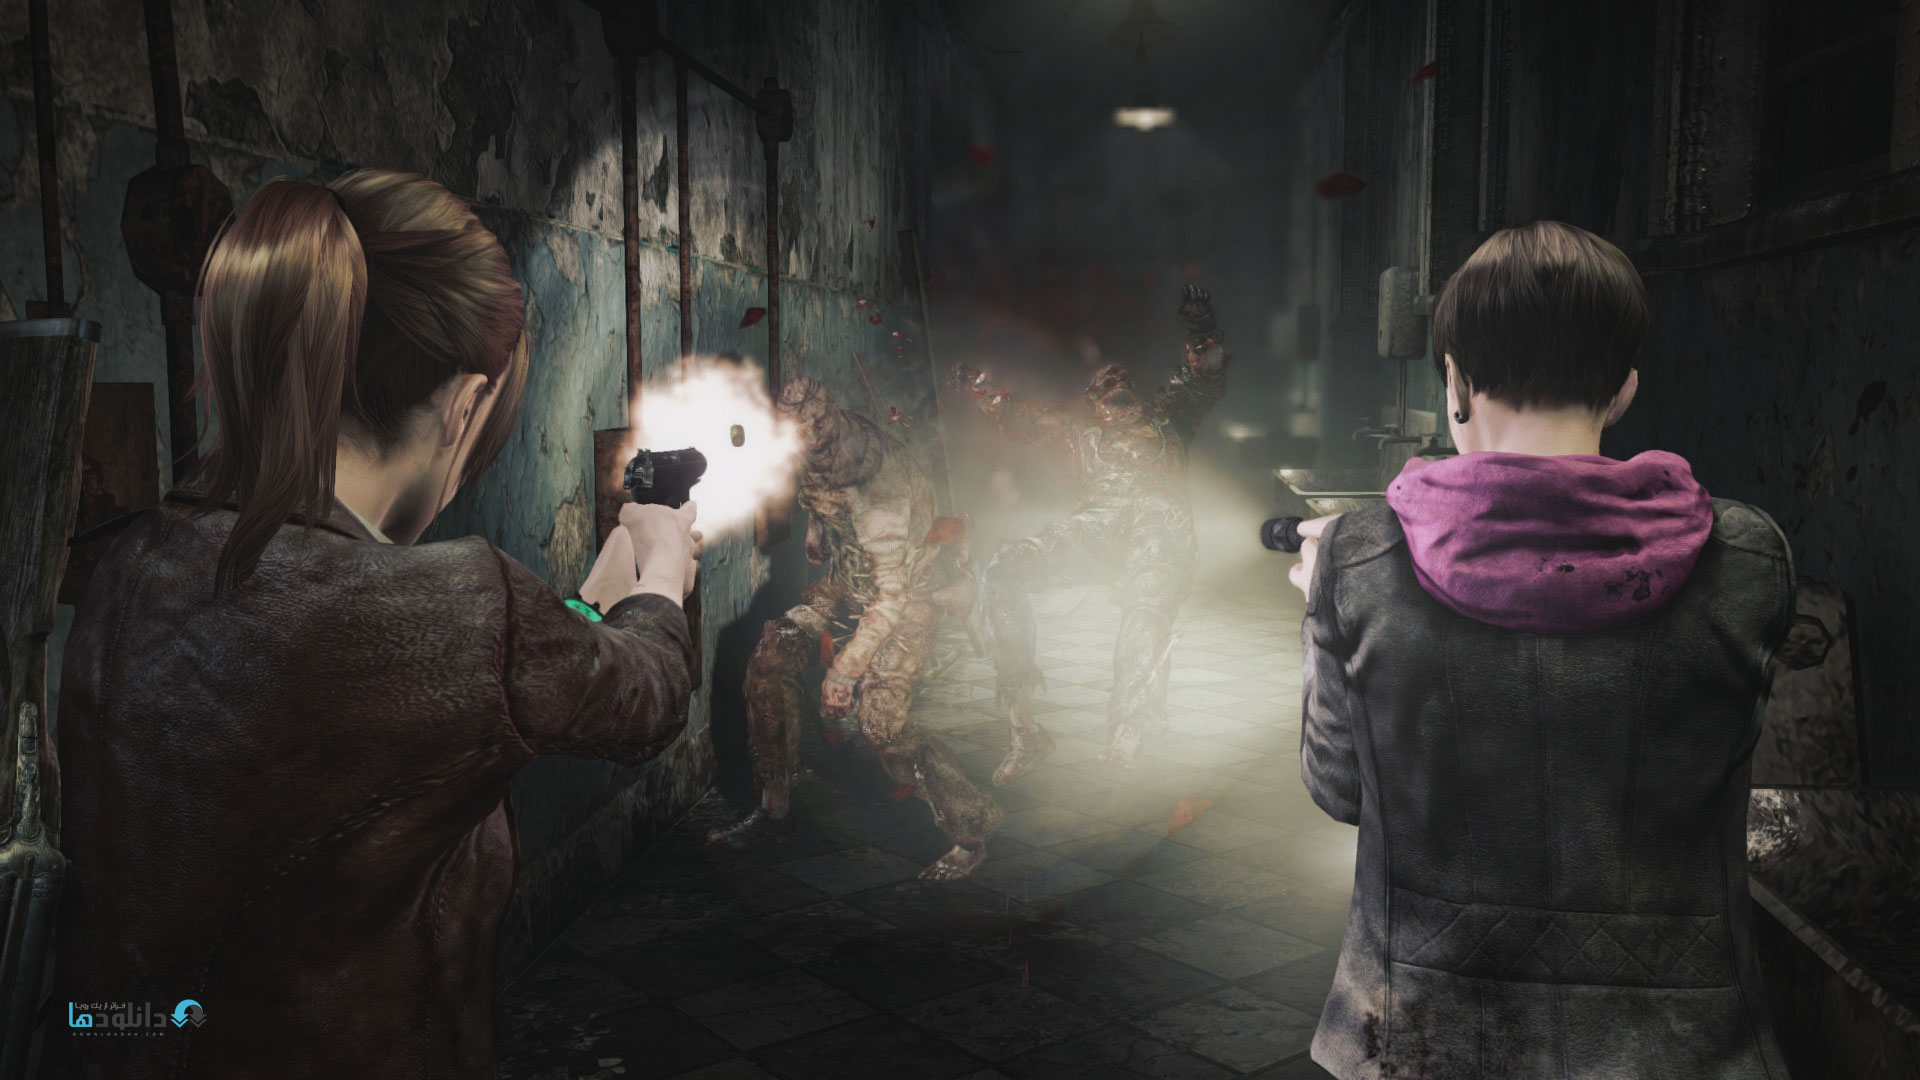 http://img5.downloadha.com/hosein/Game/February%202015/25/Resident-Evil-Revelations-2-Episode-1-screenshots-06-large.jpg